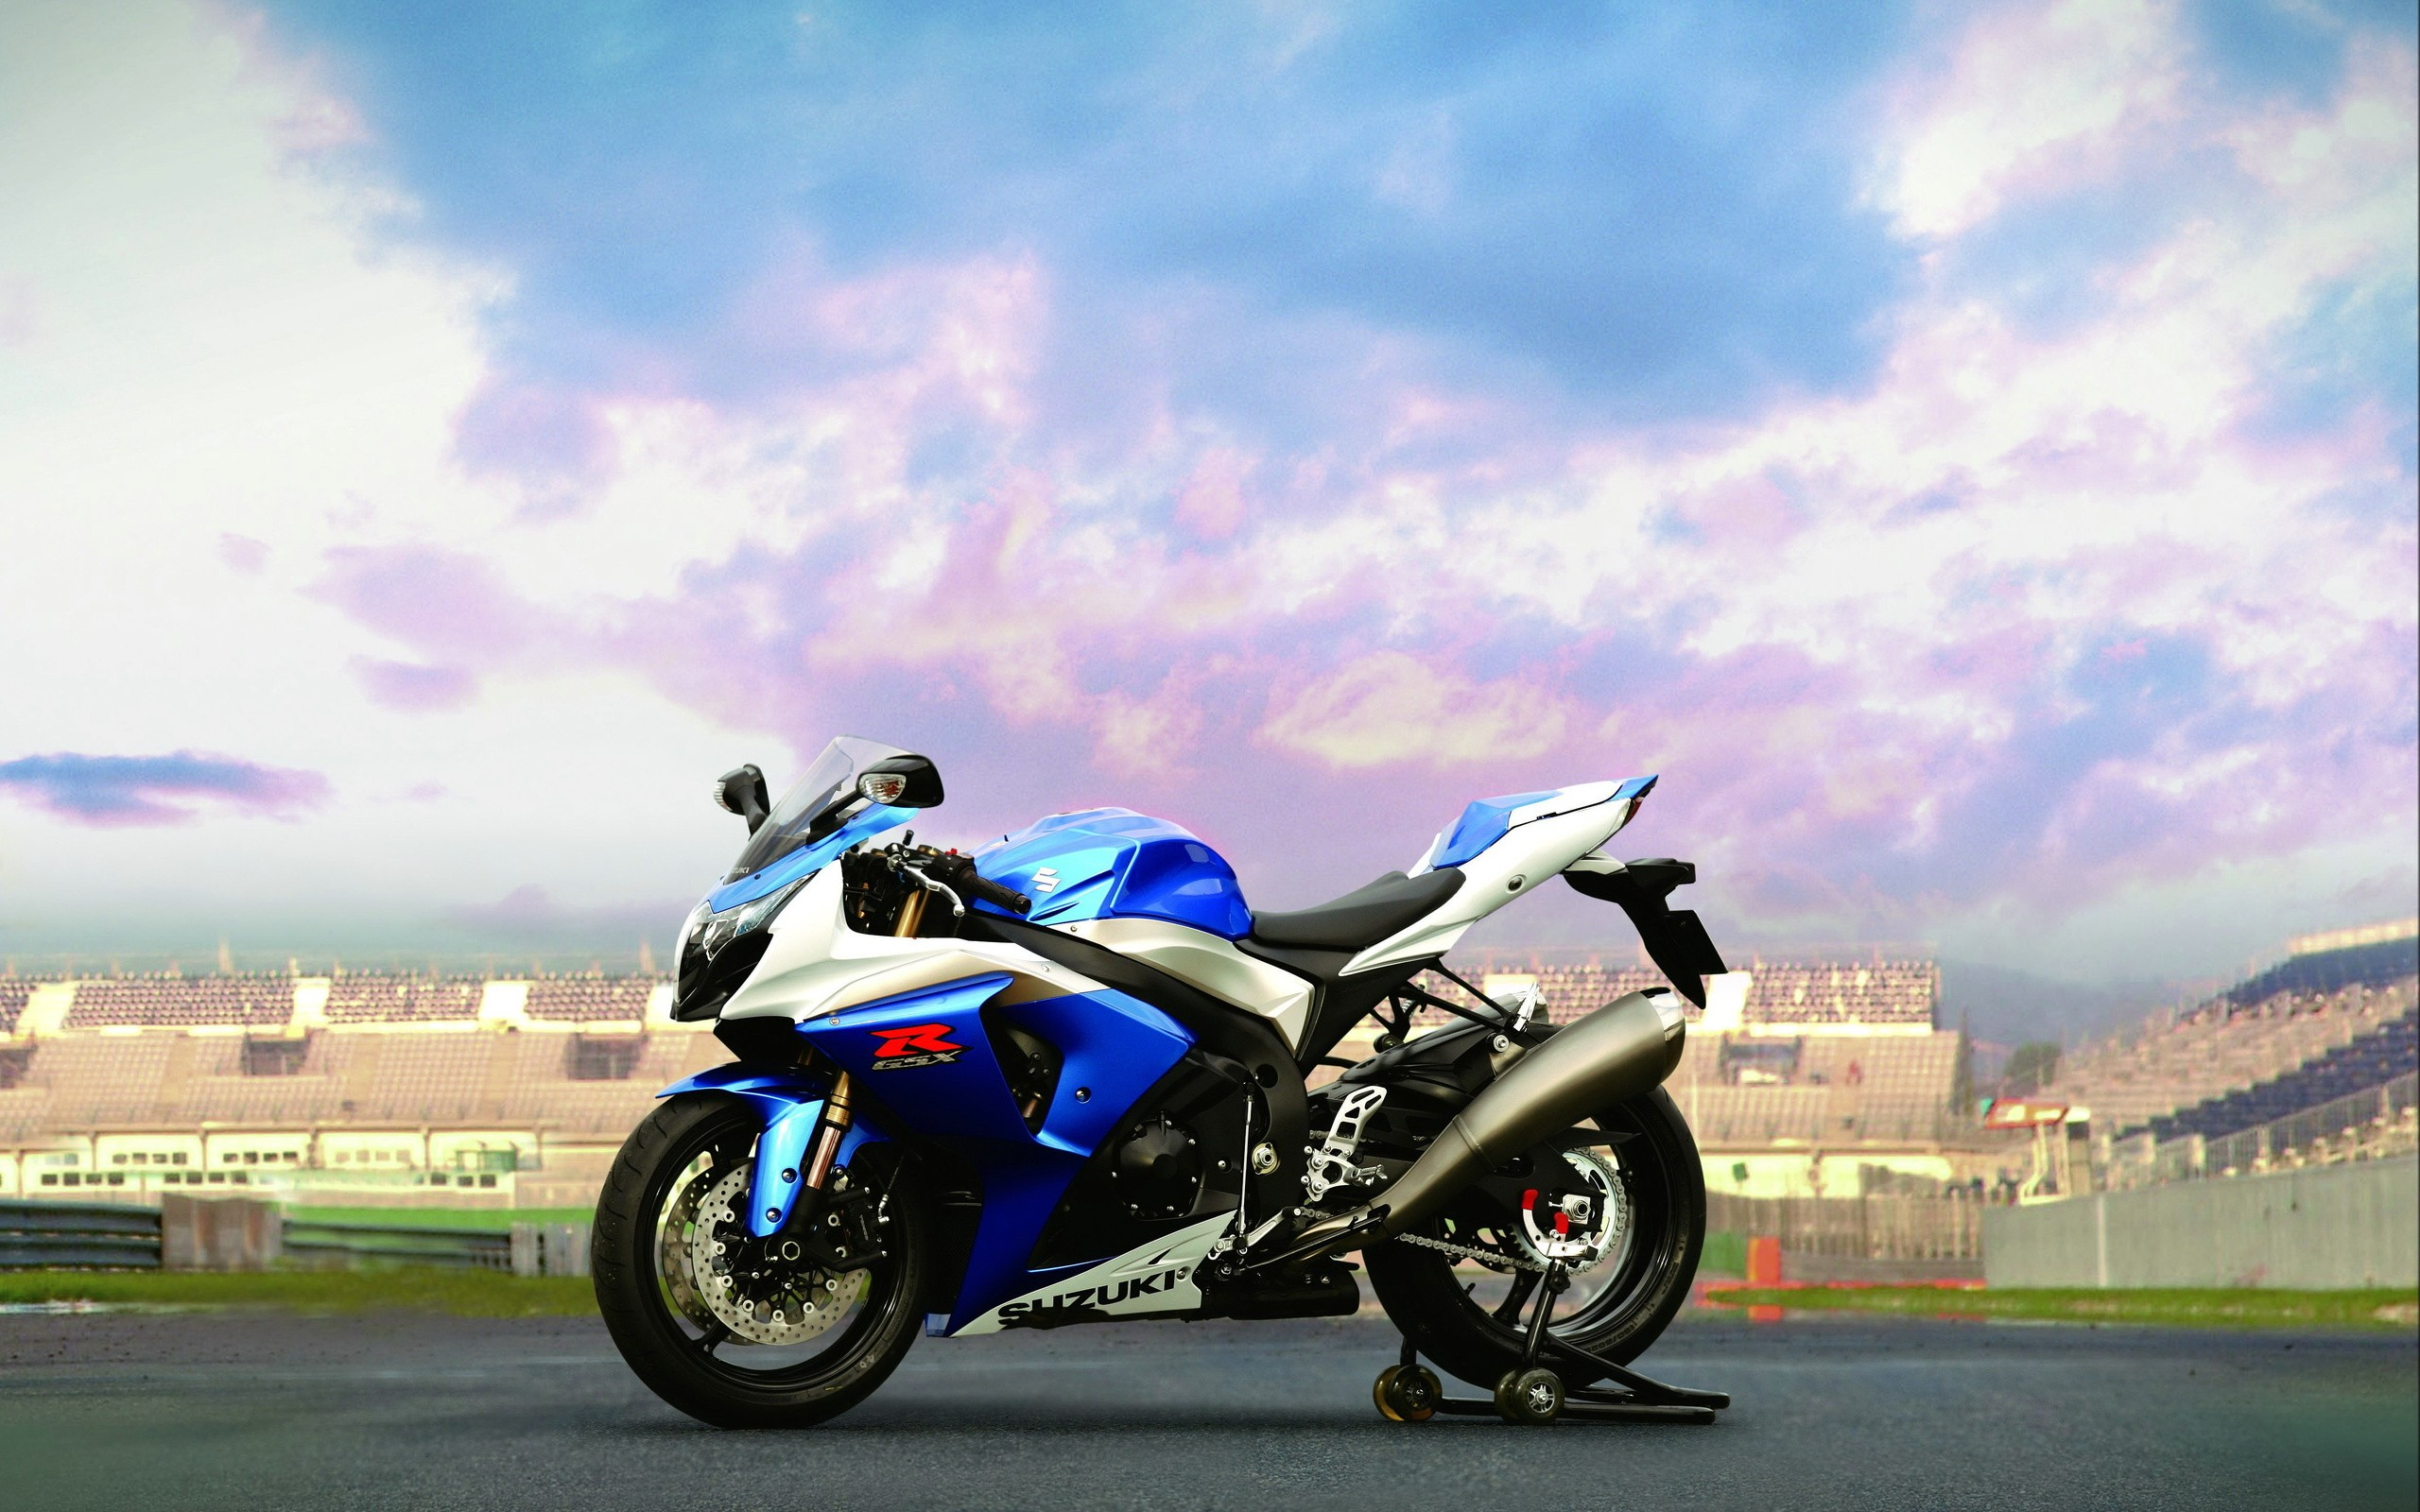 Motik Suzuki GSX R 1300 Hayabusa, photo wallpapers high resolution.